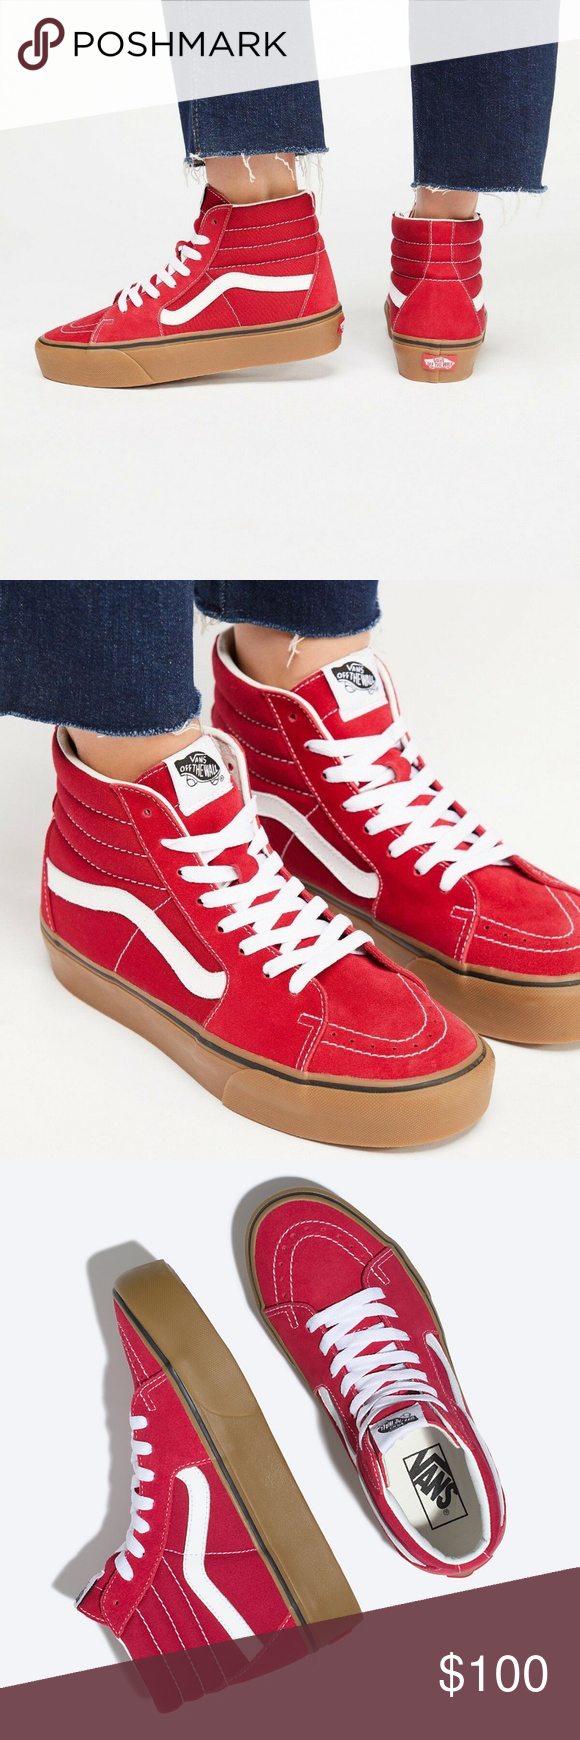 d44bcf6c Vans SK8-HI PLATFORM 2 Shoes NEW AUTHENTIC Vans SK8-HI PLATFORM 2 ...